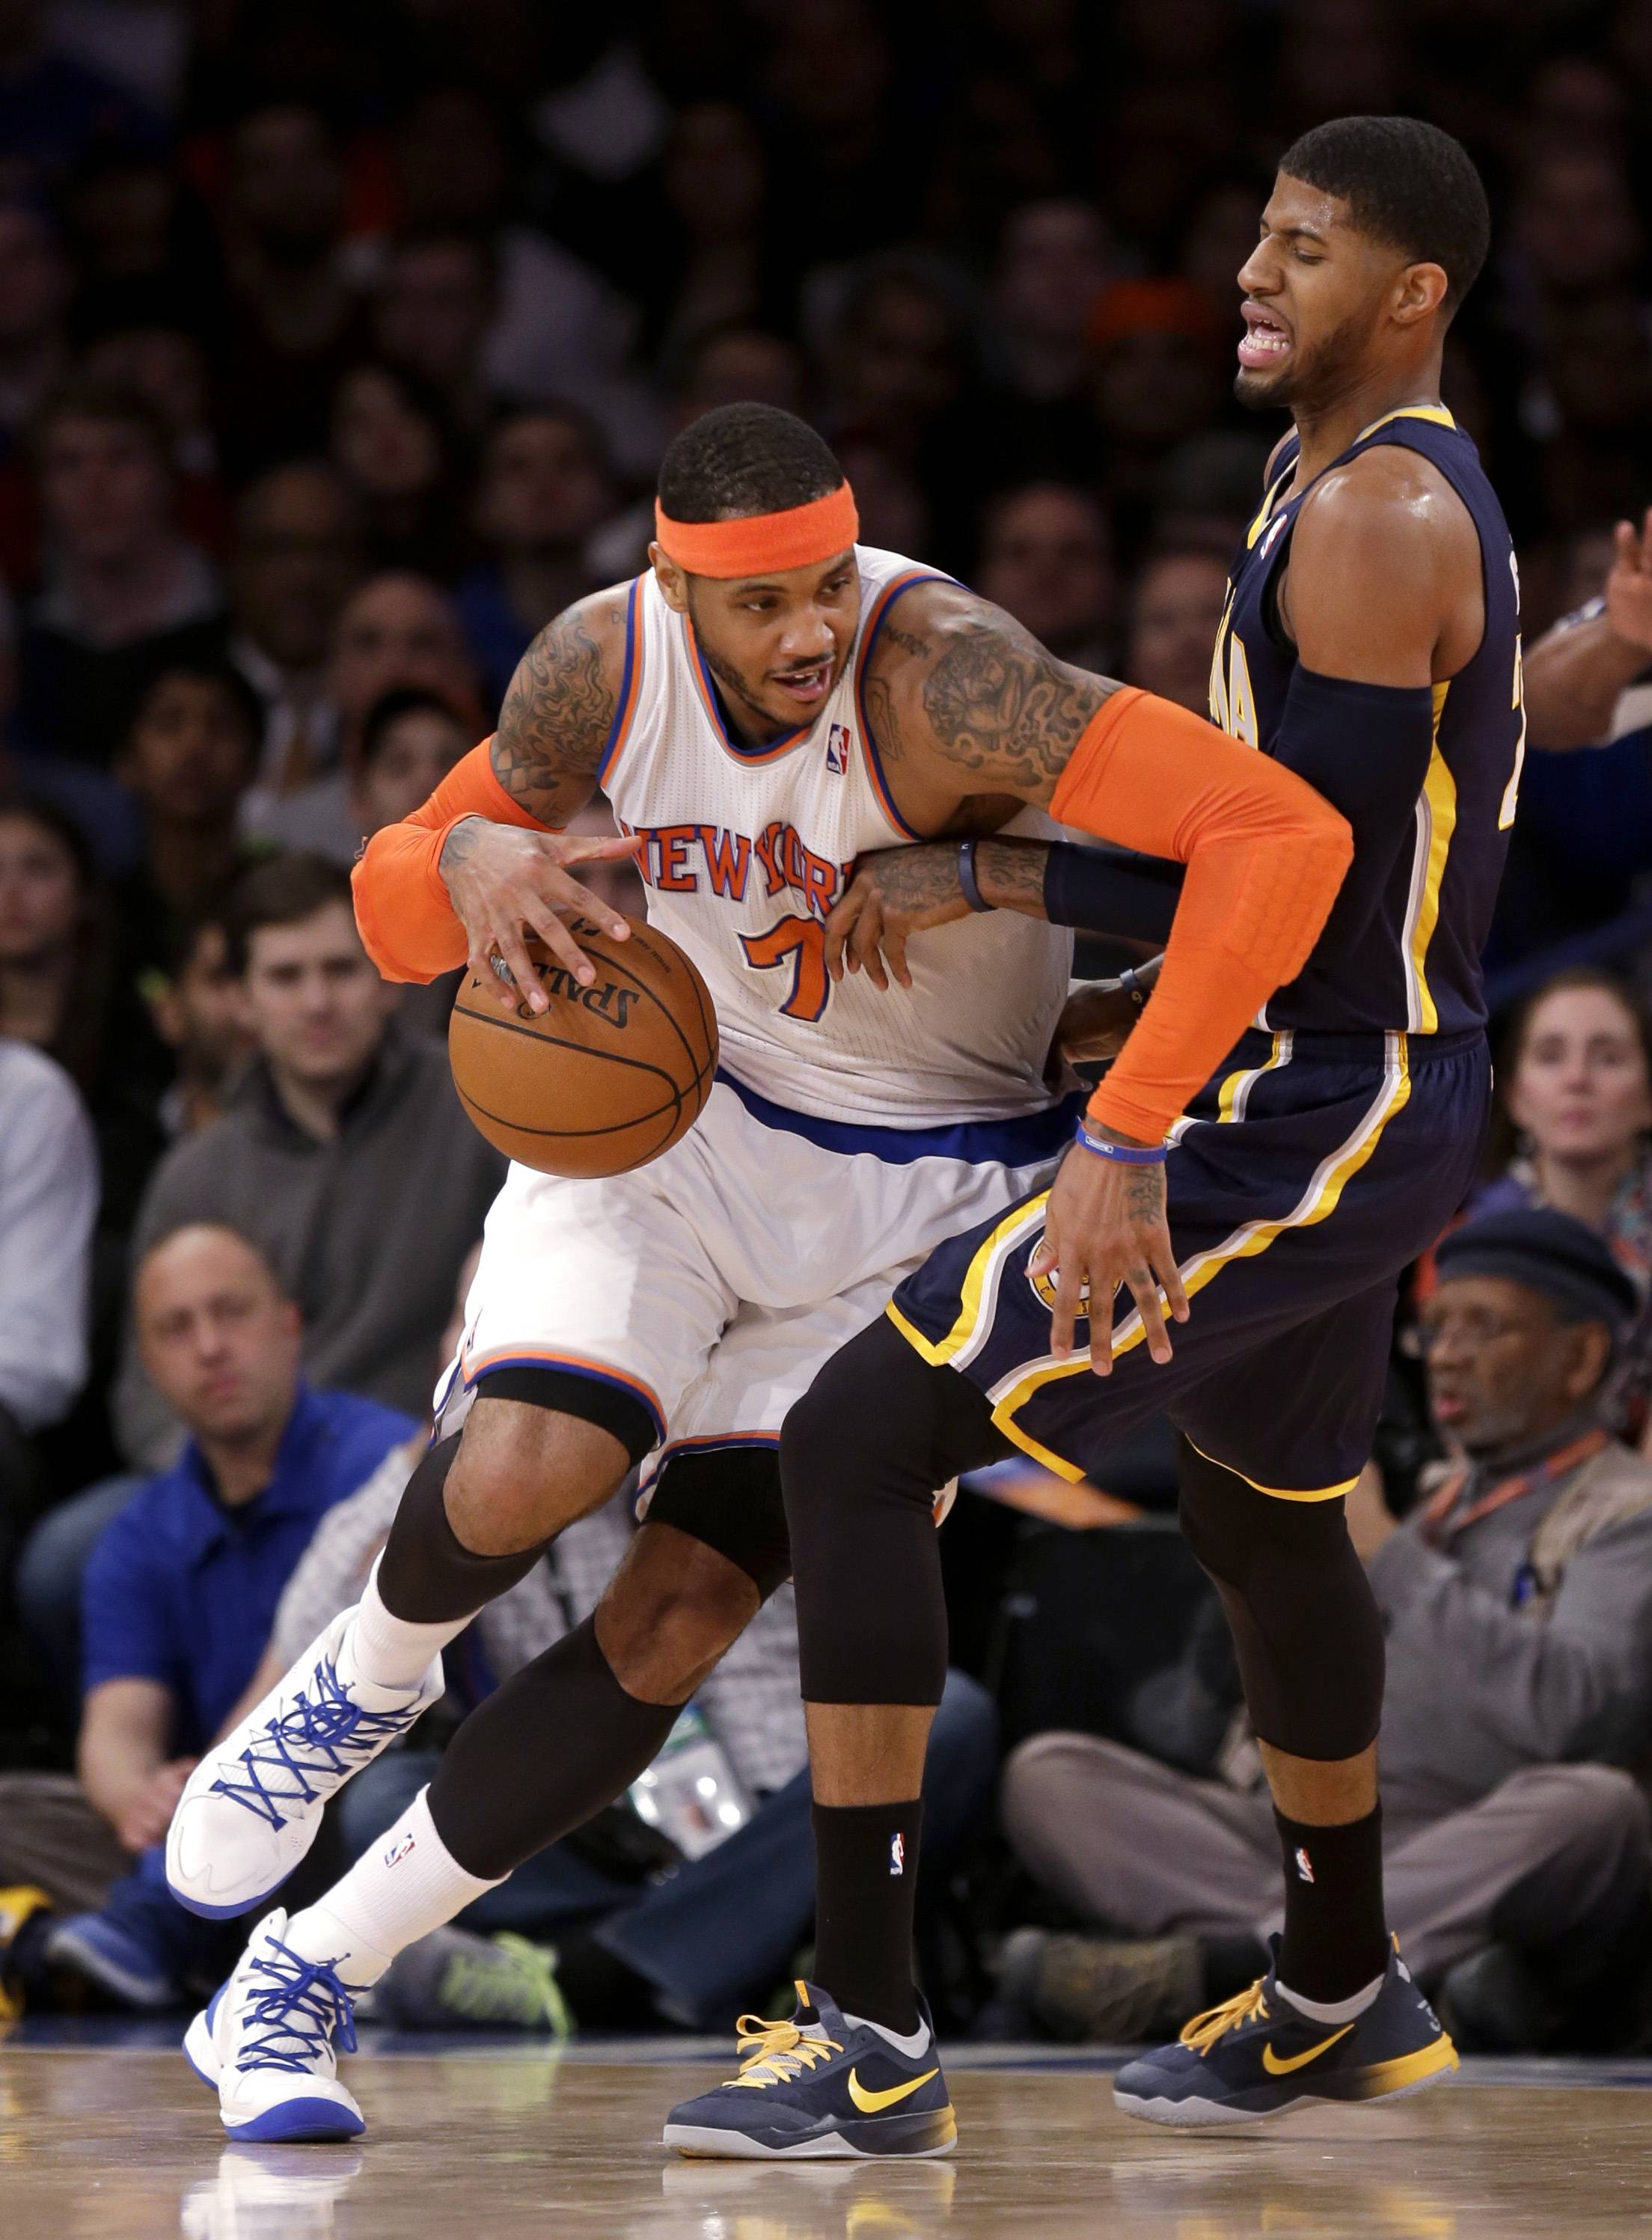 Will Phil Jackson, now in charge of the New York Knicks as team president, be able to convince Carmelo Anthony, left, to stay with the franchise?